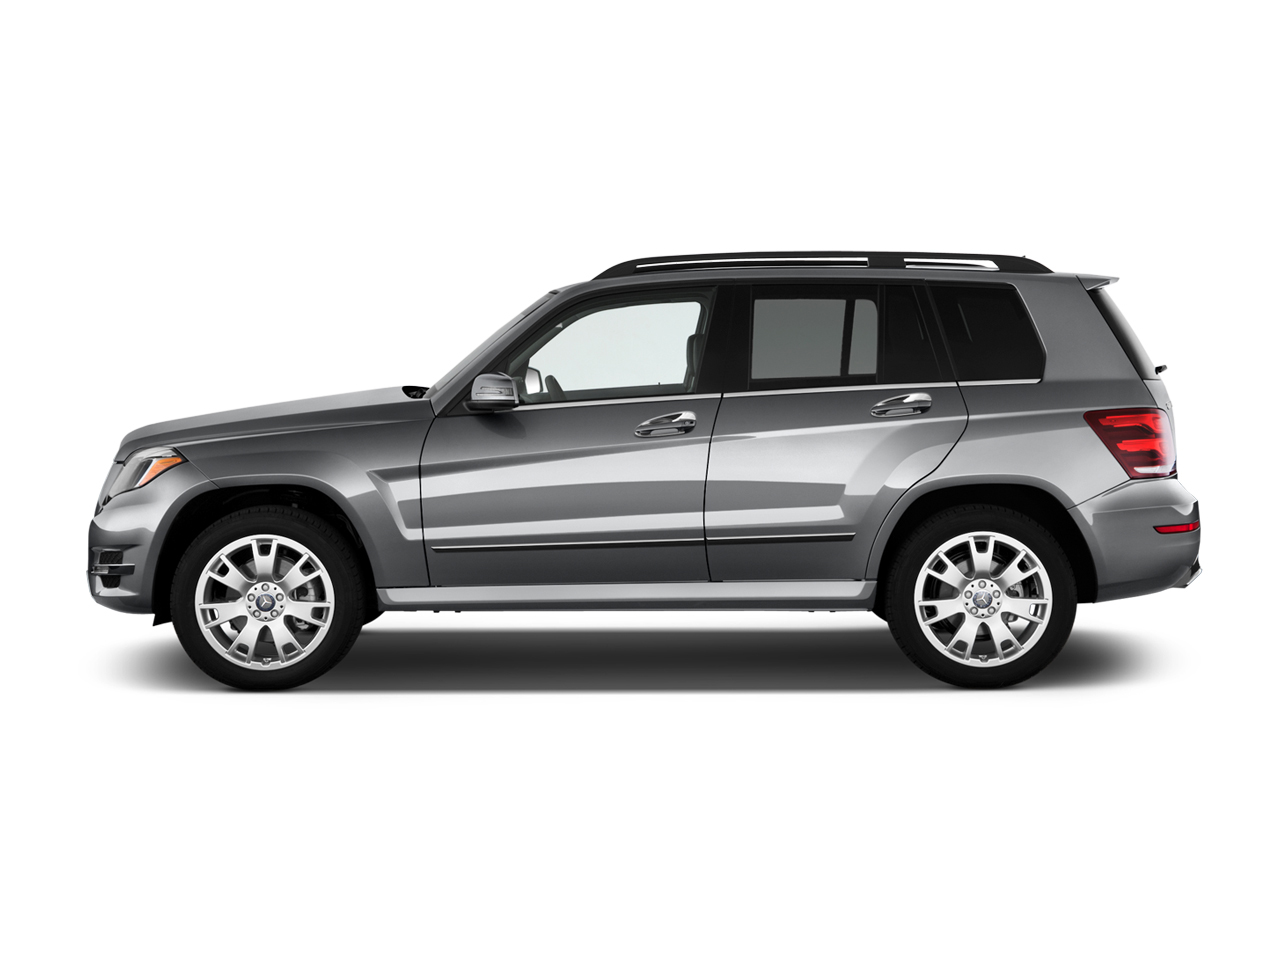 2018 mercedes benz glk class car photos catalog 2018 for Mercedes benz glk class